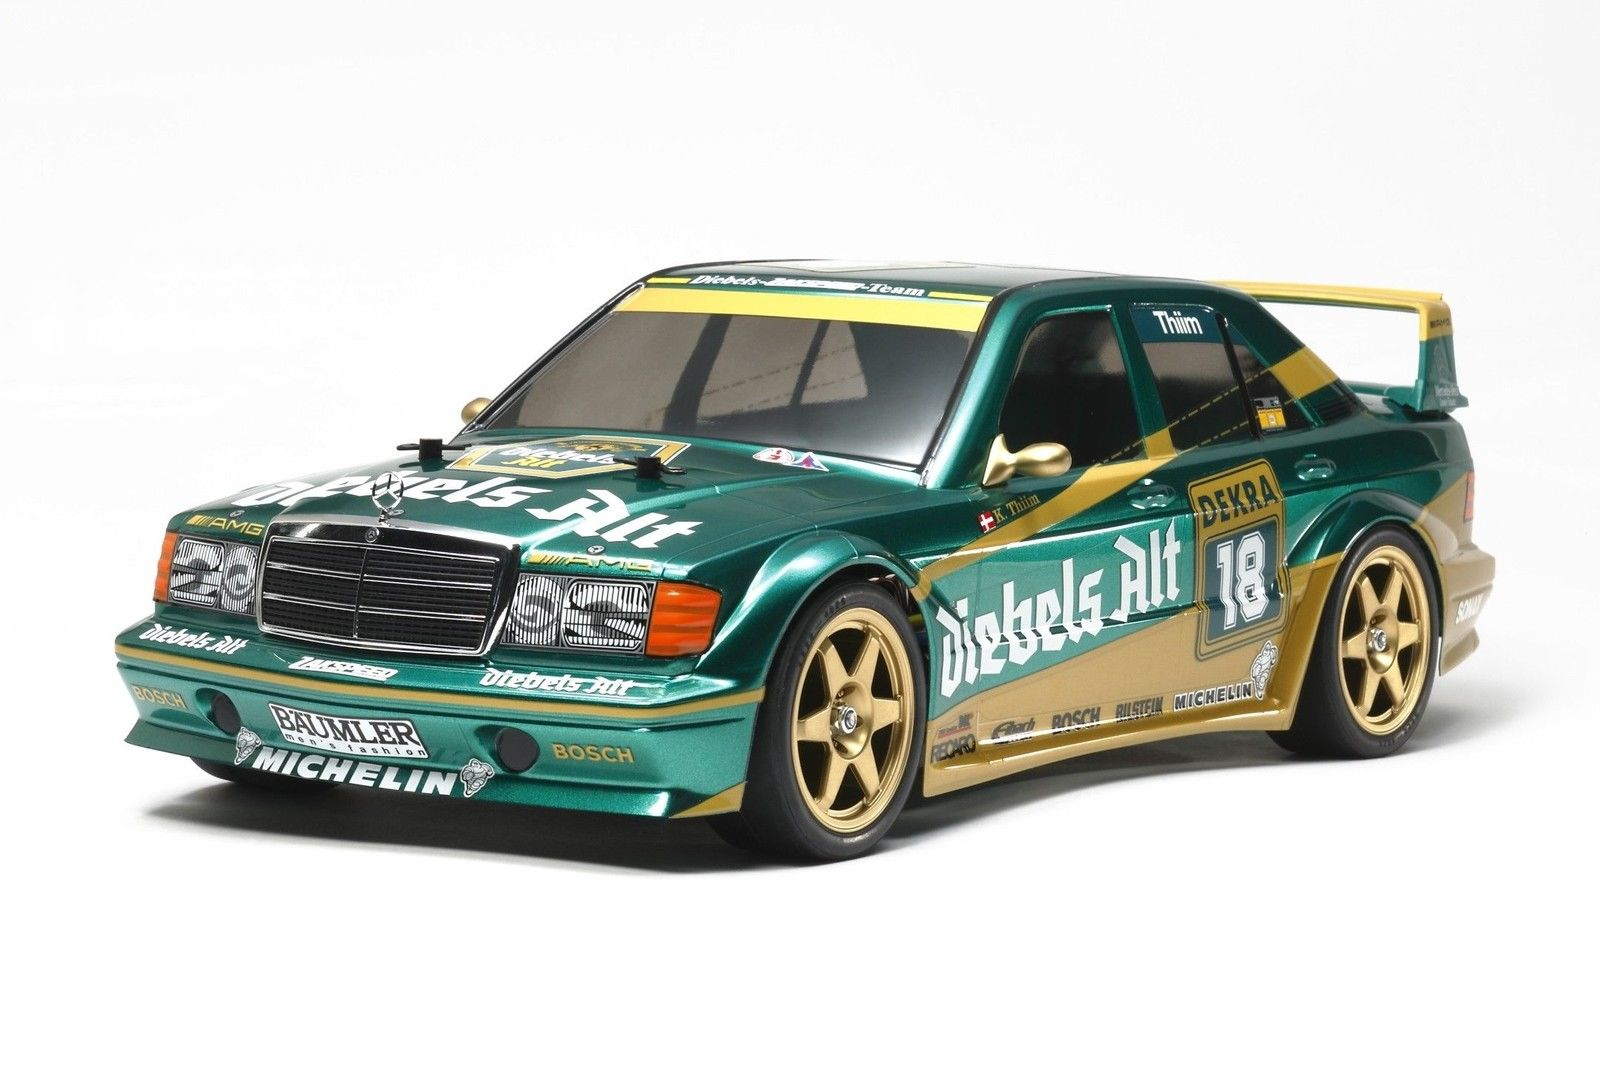 1/10 Mercedes 190 E 2.5 16 Evo II Diebels Alt TT01E Kit